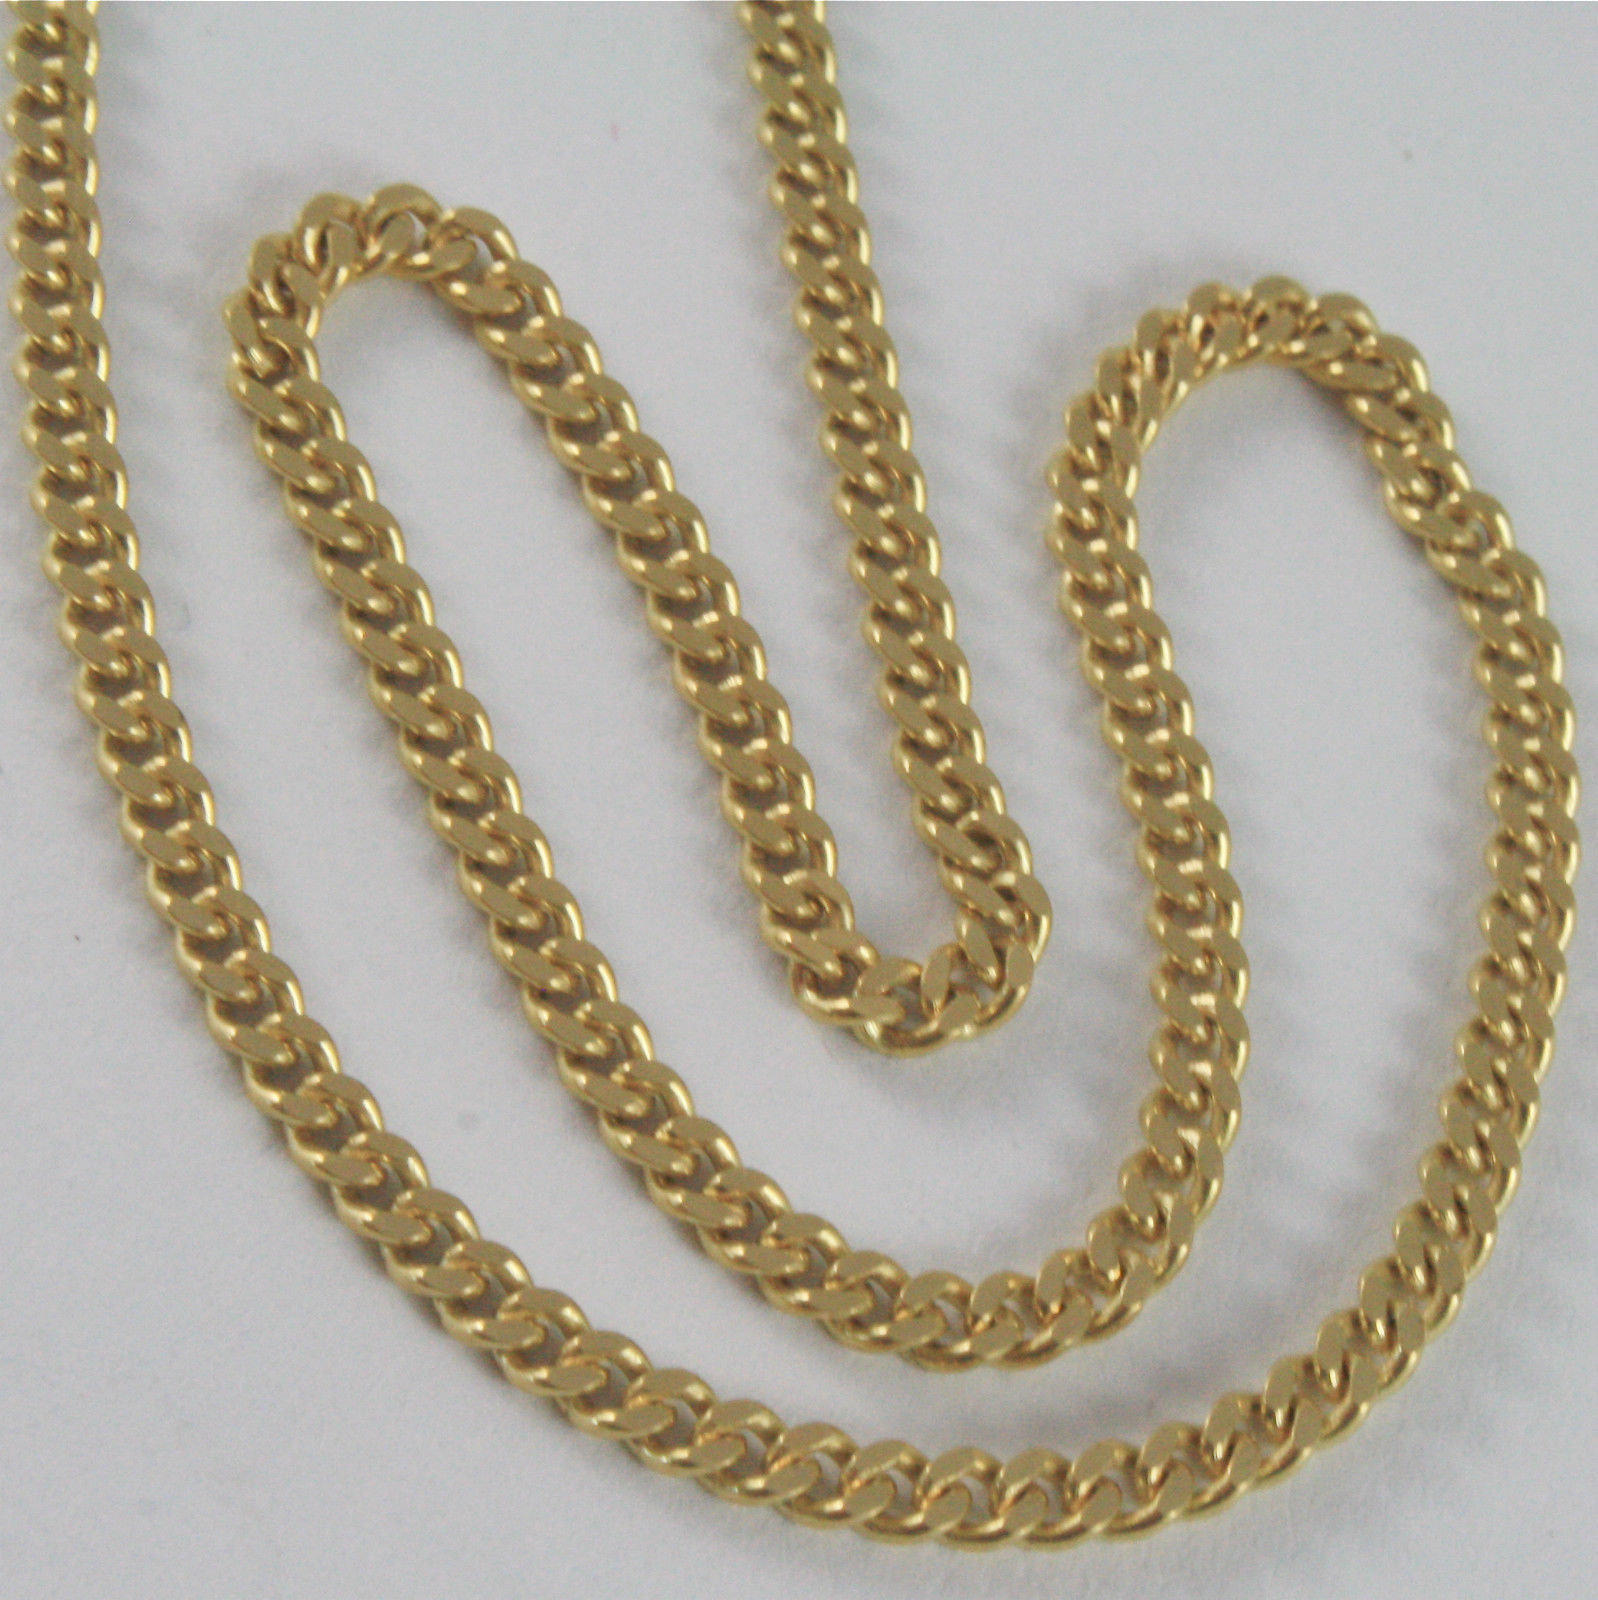 SOLID 18K YELLOW GOLD CHAIN MASSIVE GRUMETTE MESH, FLAT NECKLACE, MADE IN ITALY